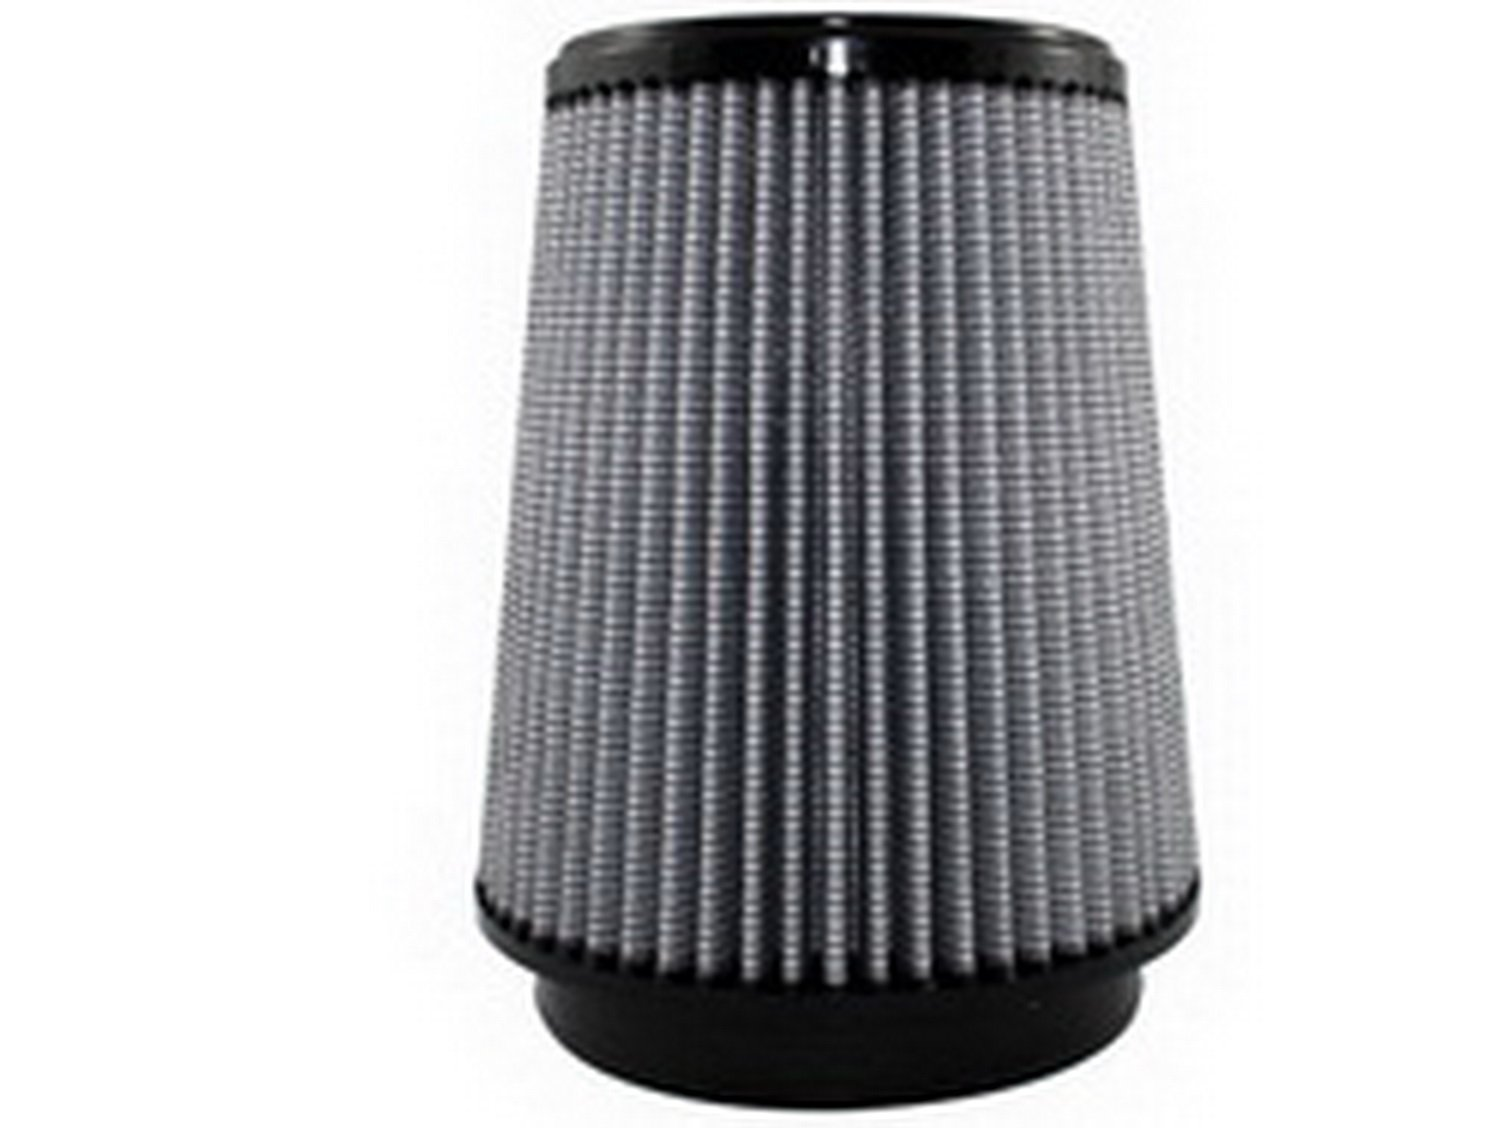 aFe Power 21-90015 Universal Clamp On Filter 5-1/2 F x 7 B x 5-1/2 T x 8 H in AFE Filters 7443